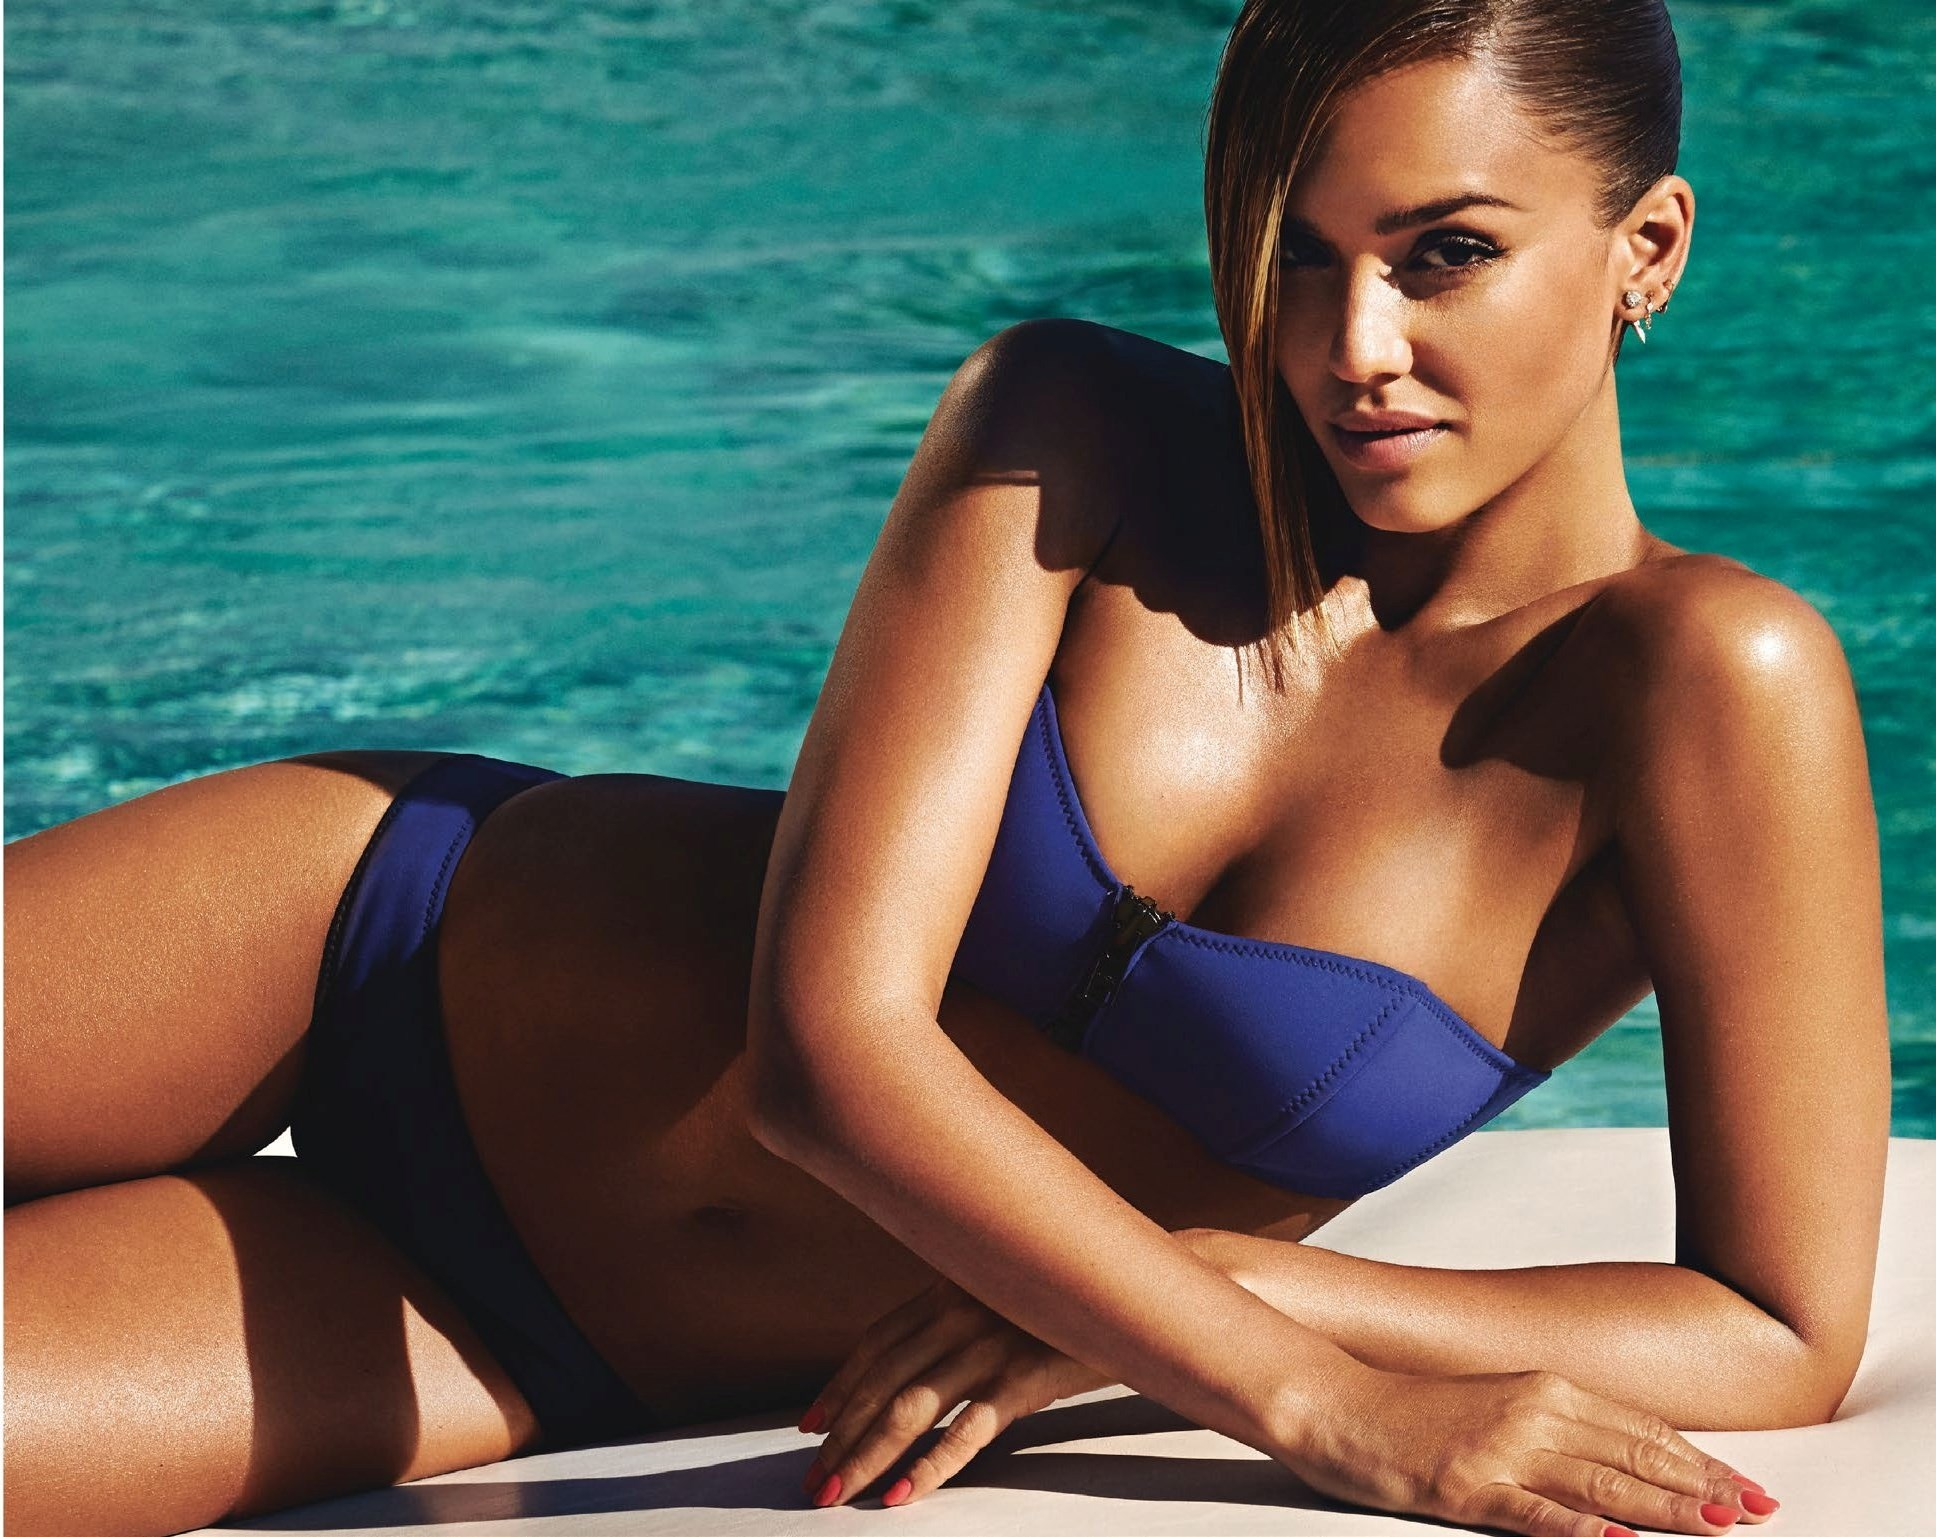 Jessica Alba, Hollywood's Good Girl, Rediscovers Her Sexuality (photos!) 16